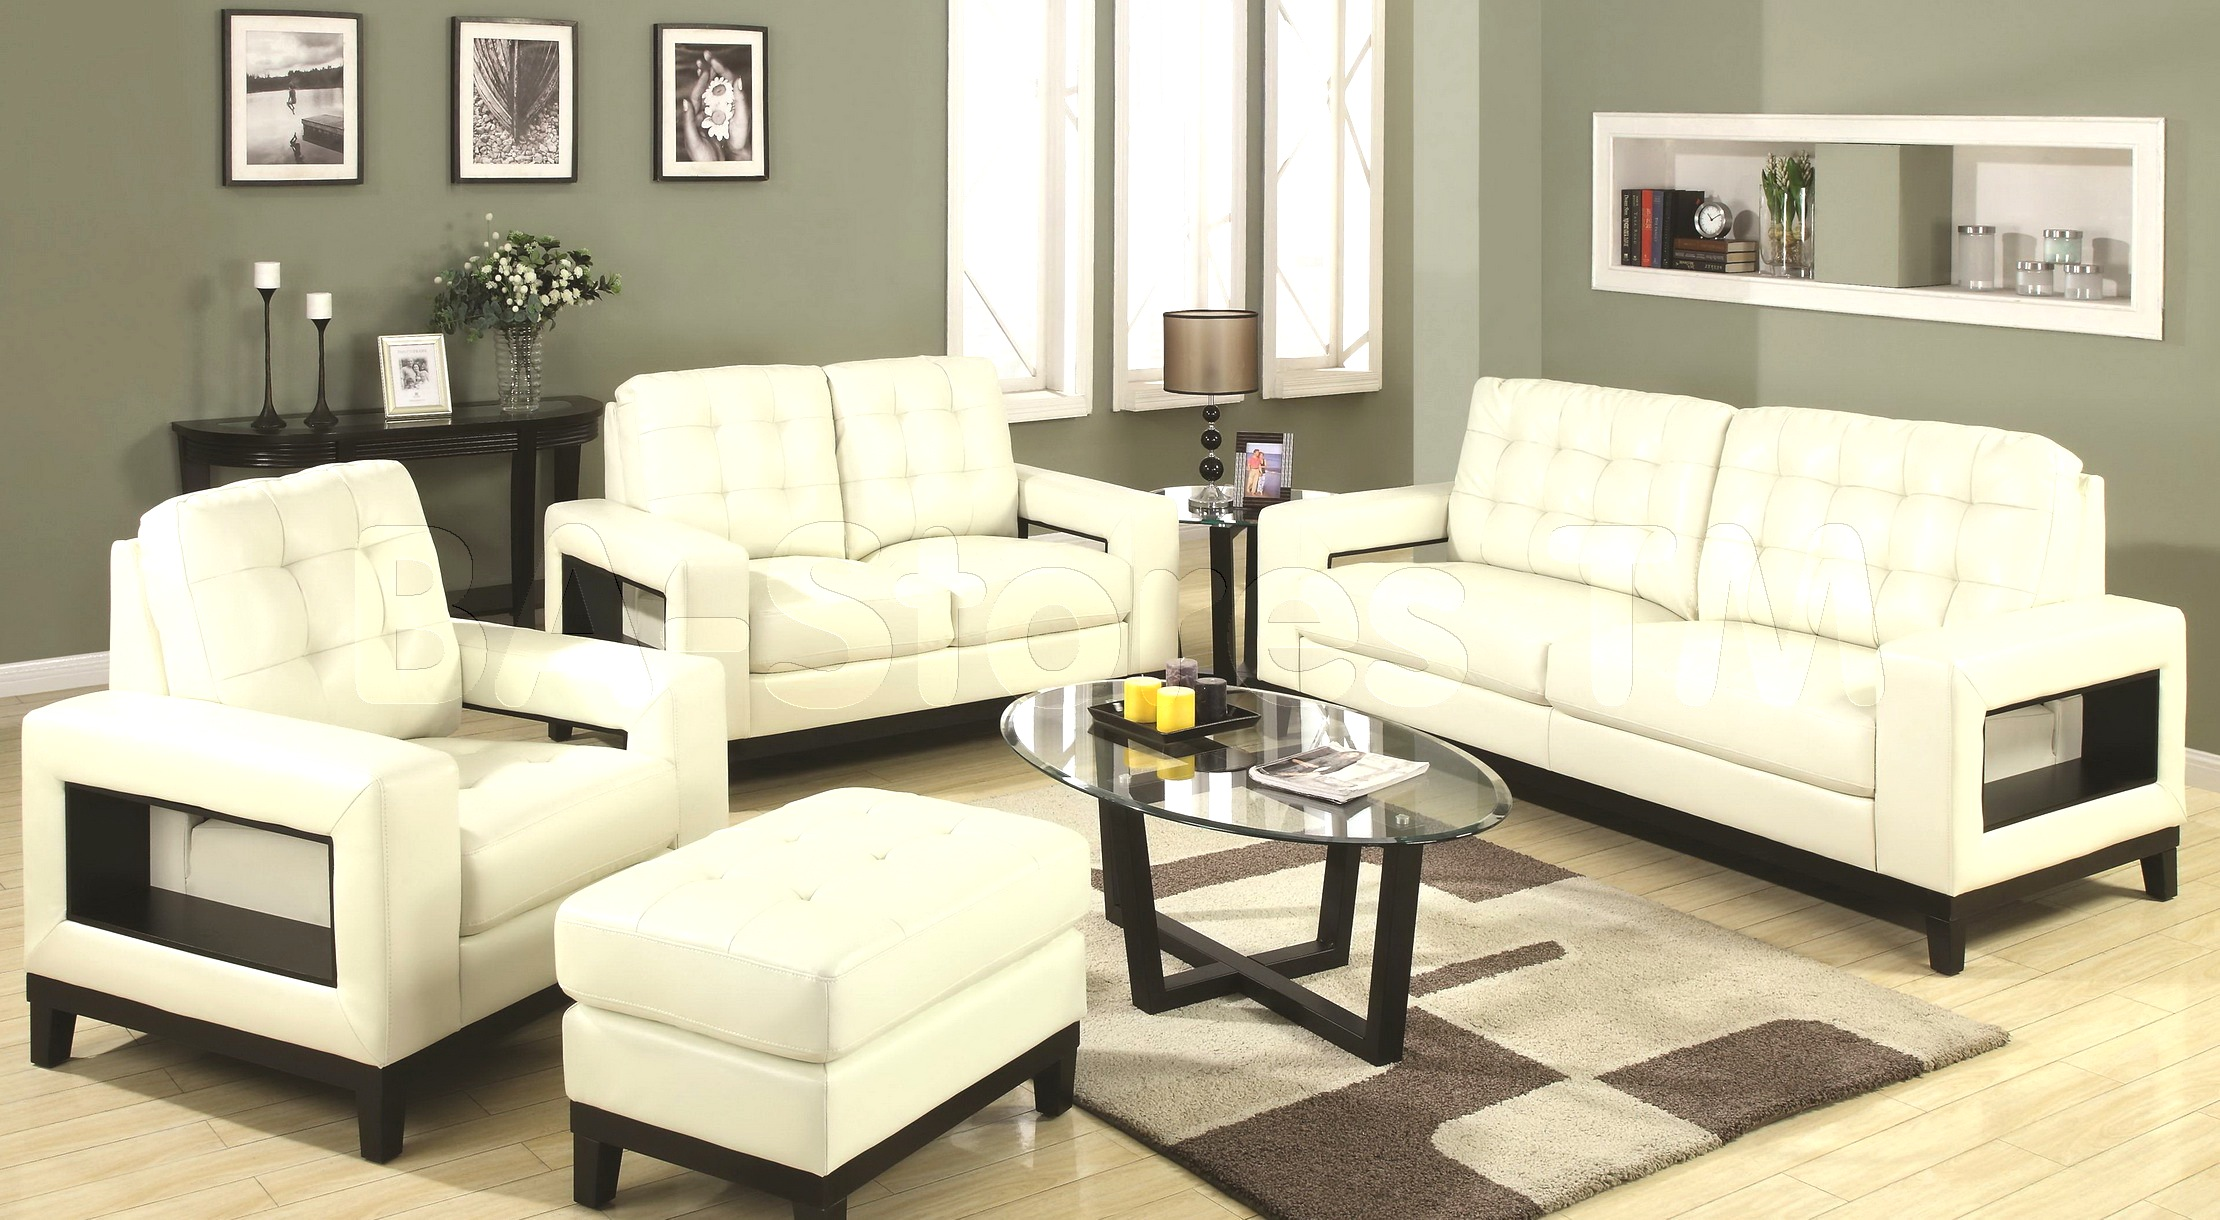 White living room furniture sets roselawnlutheran - Furniture design modern ...